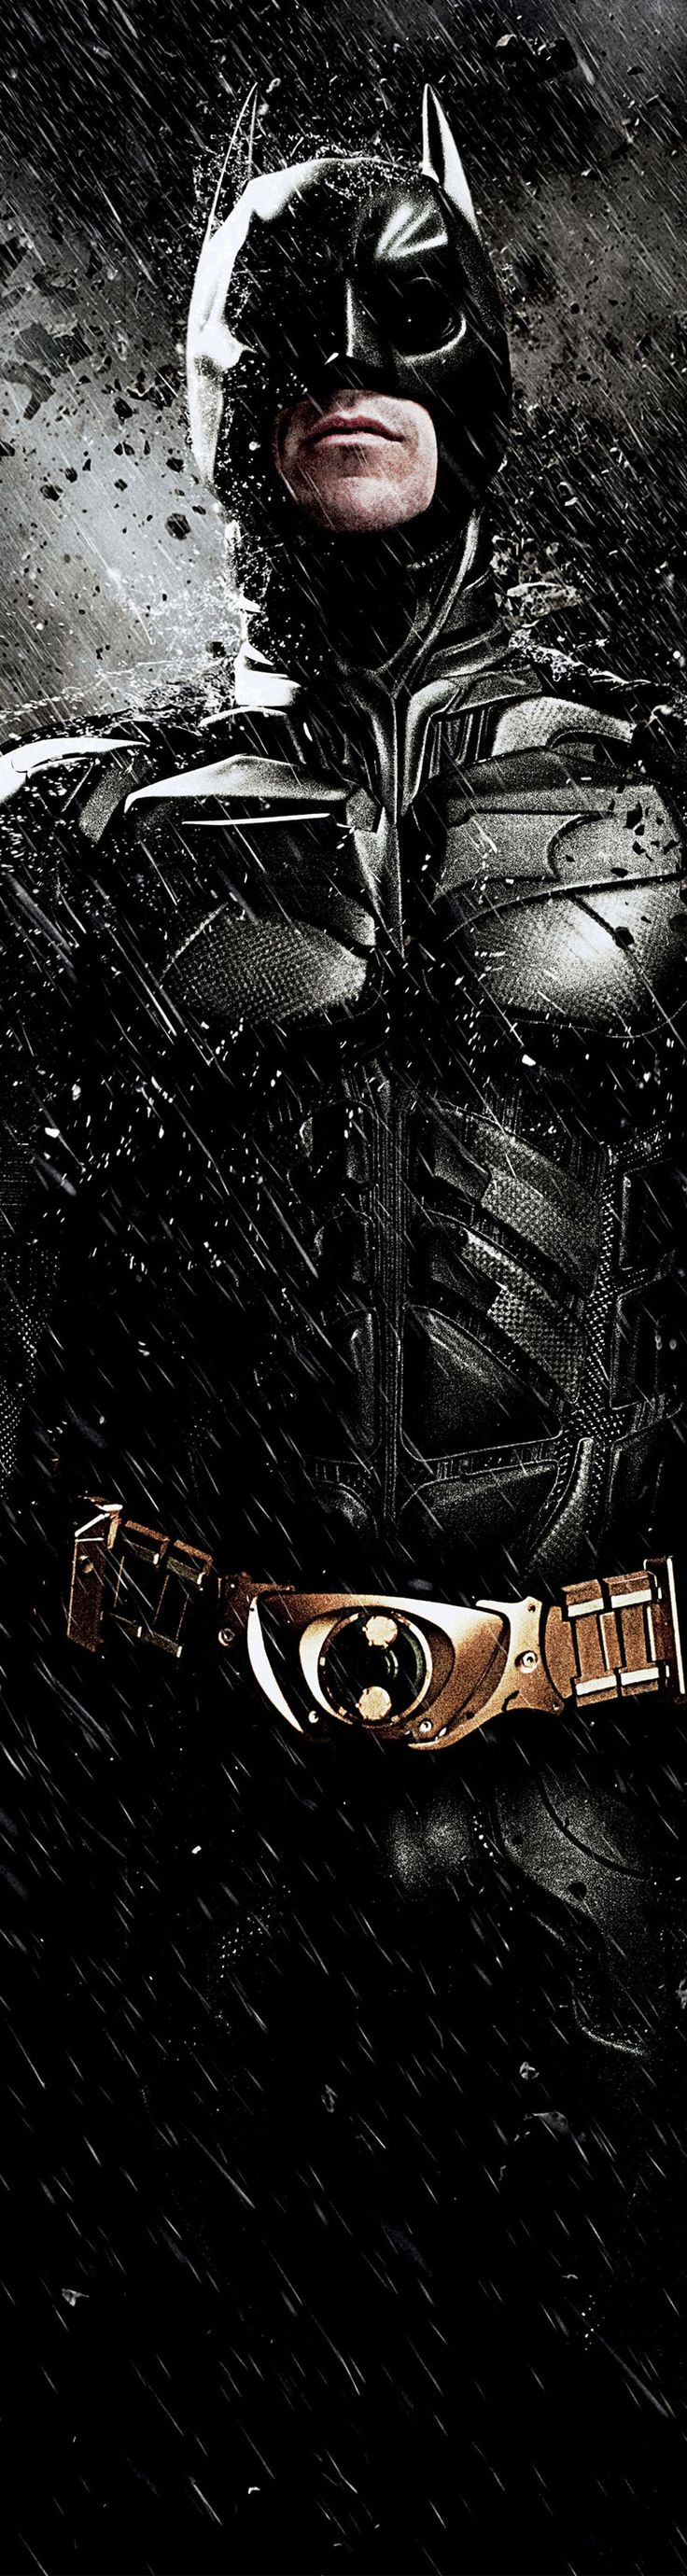 Christian Bale is Batman in The Dark Knight Rises  2012